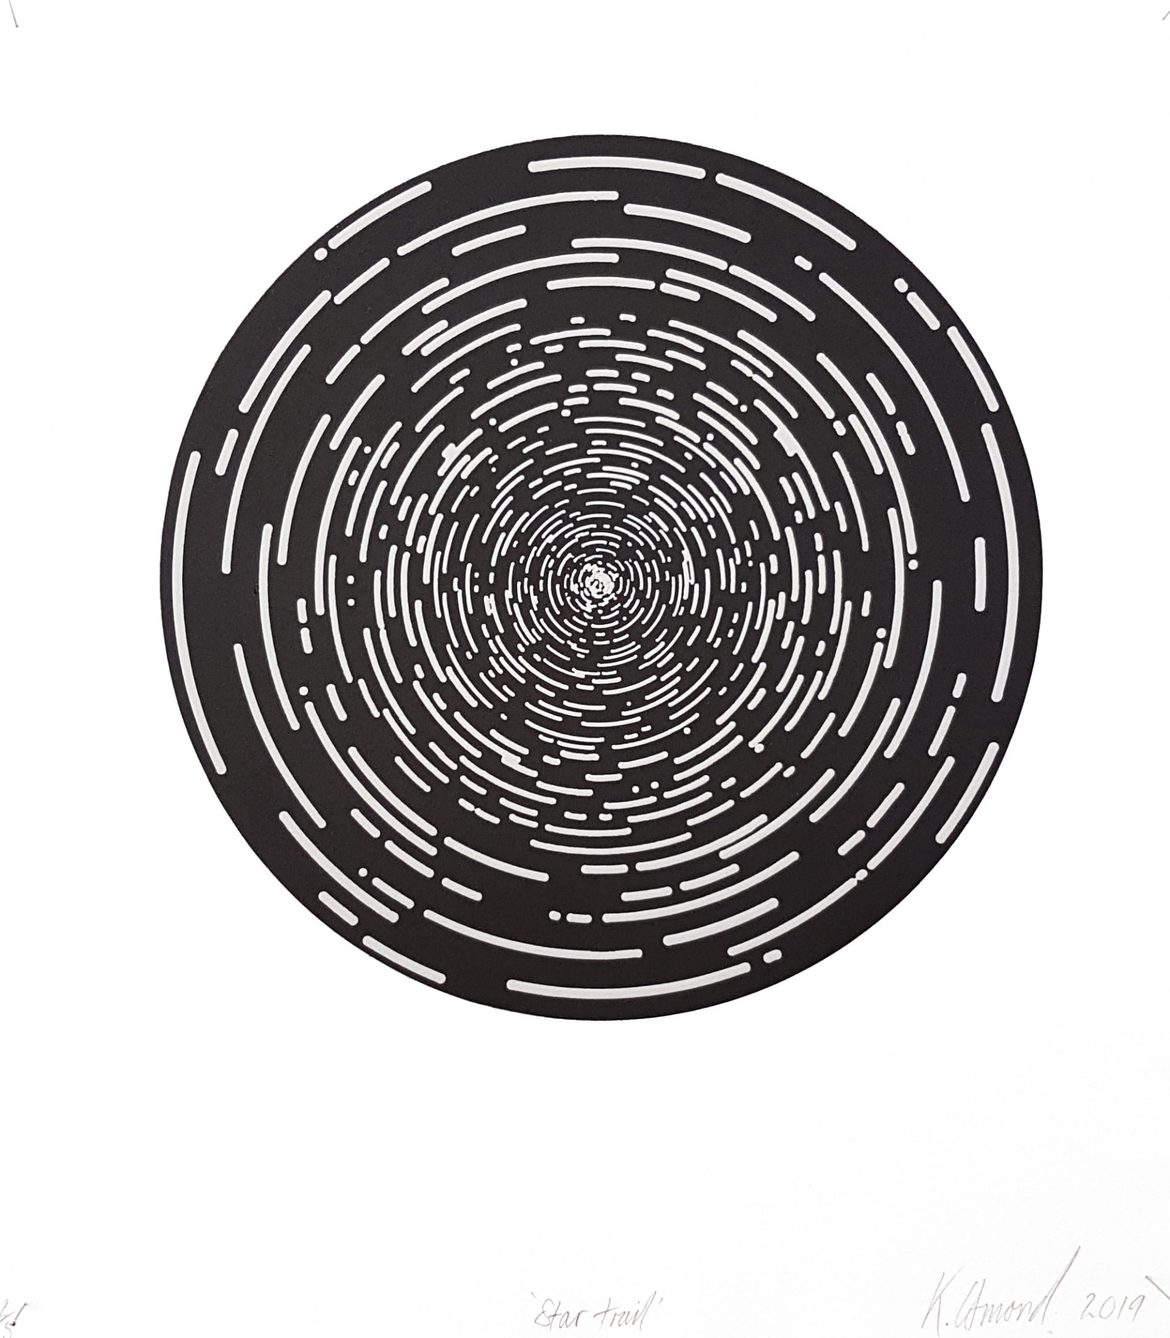 Star Trail (Black), woodblock print, 300gsm hahnemühle deckled edge etching paper, edition of 5 +1AP, 35 x 31 cm